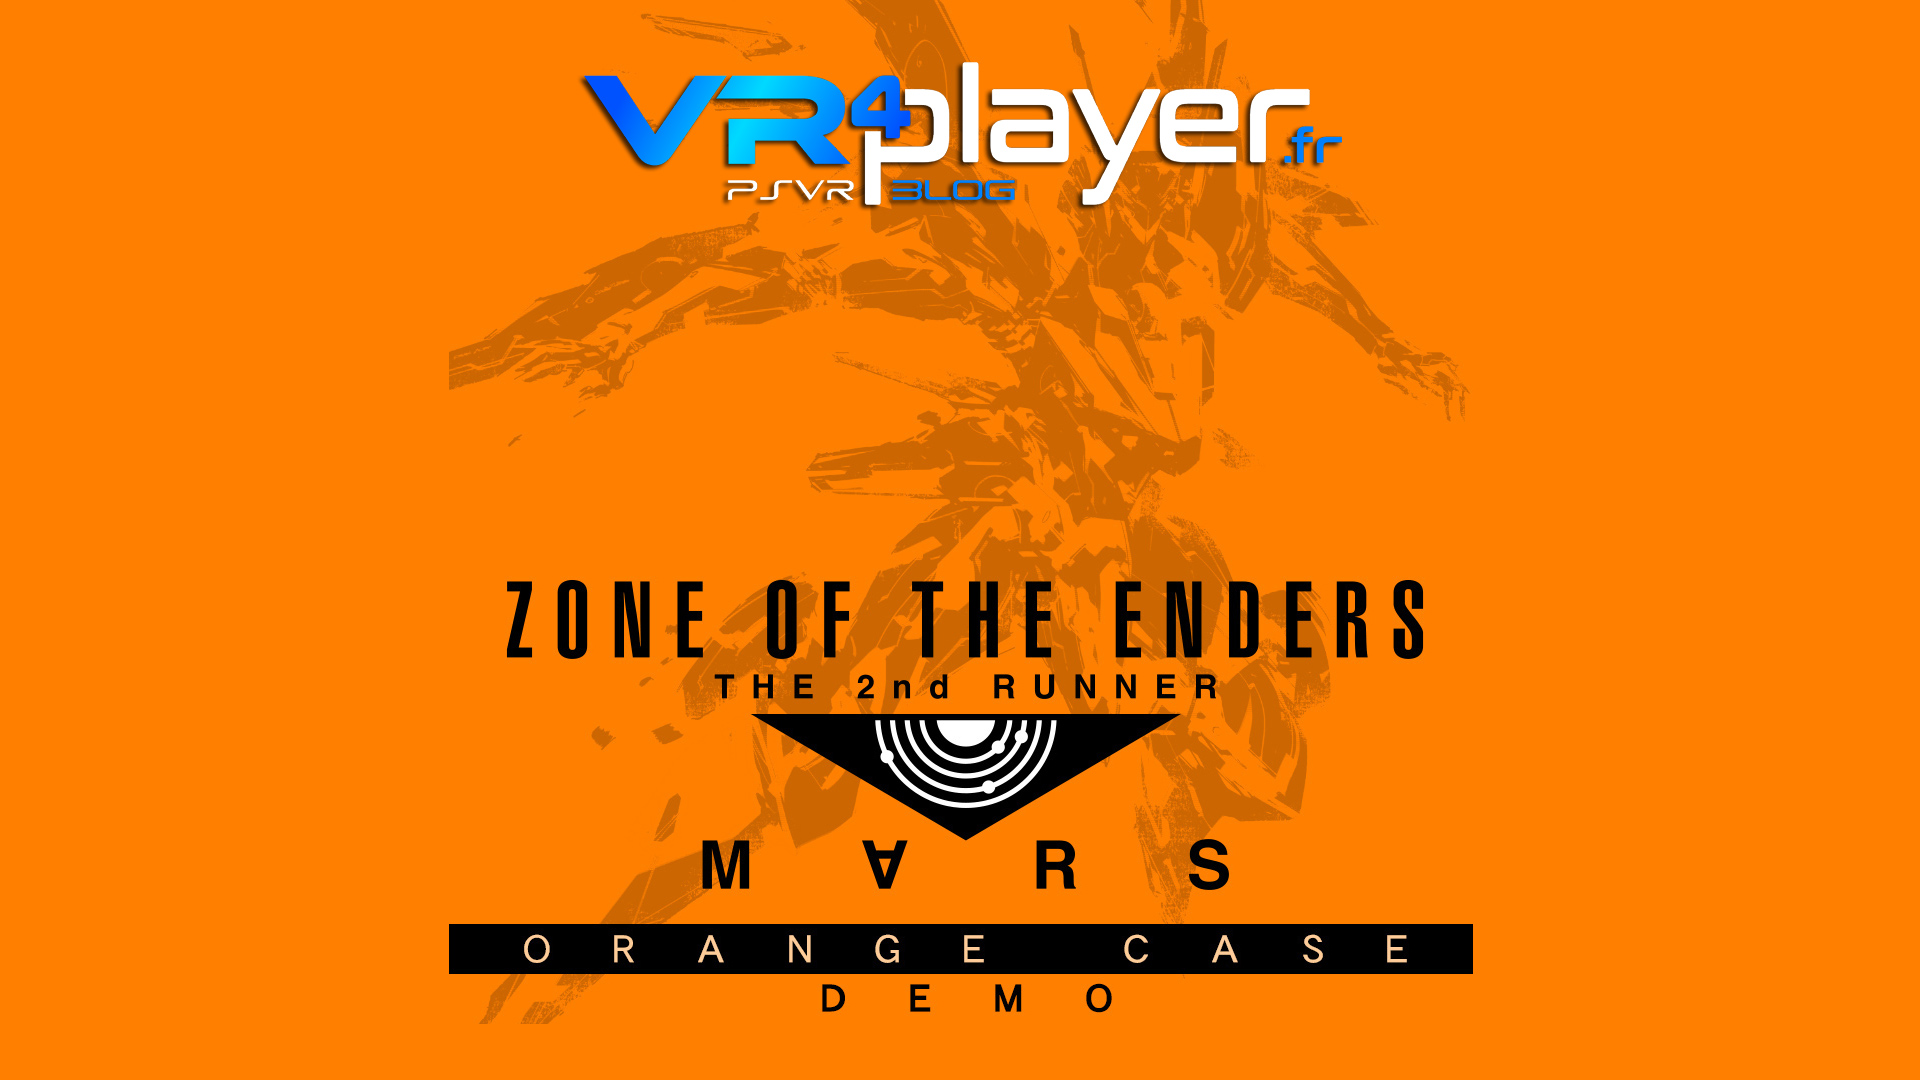 Zone of the Enders Orange Case démo sur PSVR vr4player.fr